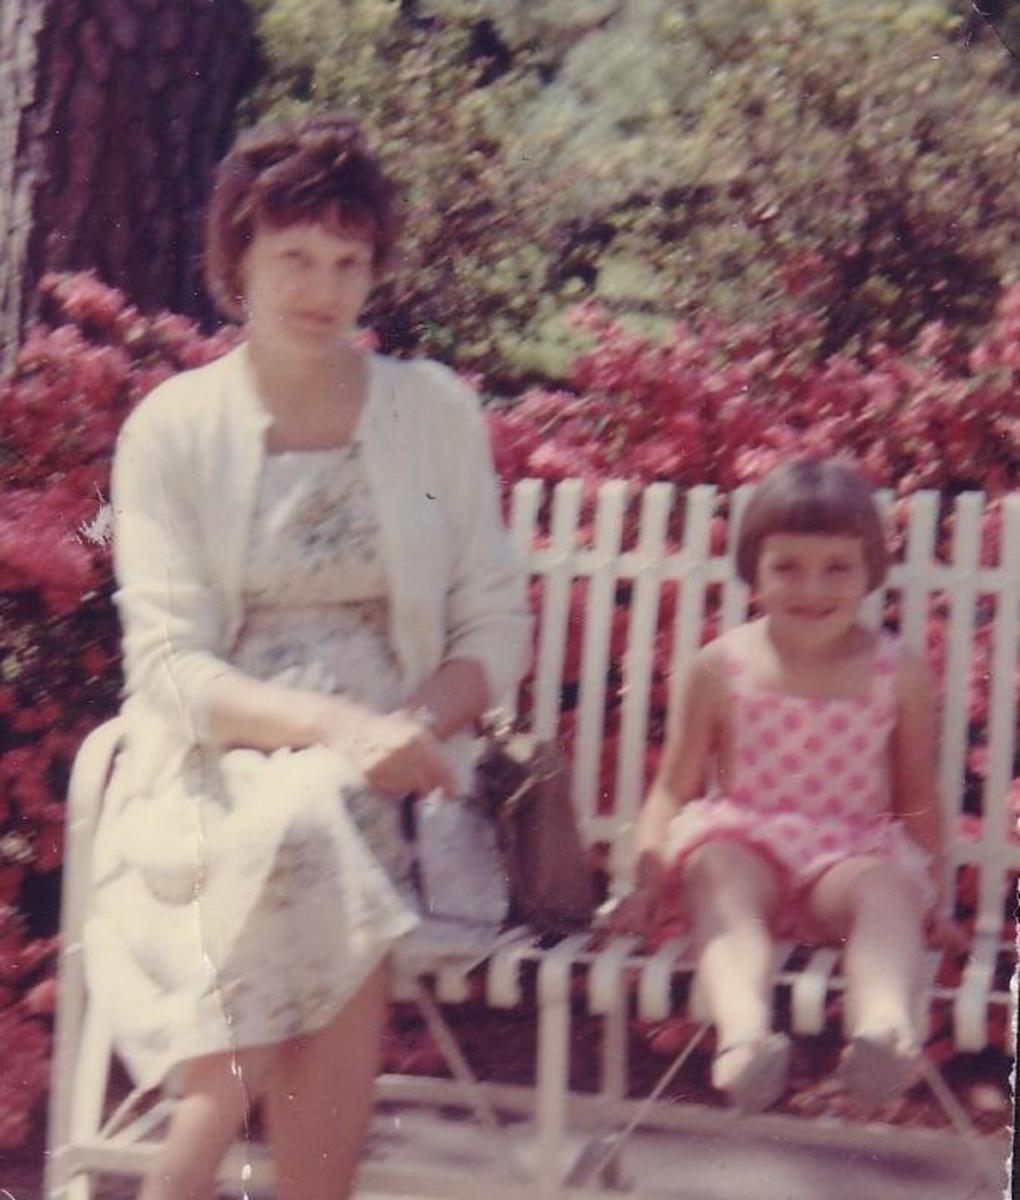 My mother and my middle sister, sitting on a bench on the grounds of the Bradley Library in my home town.  My mother always cut my middle sister's hair like Dorothy Hamill for some reason.